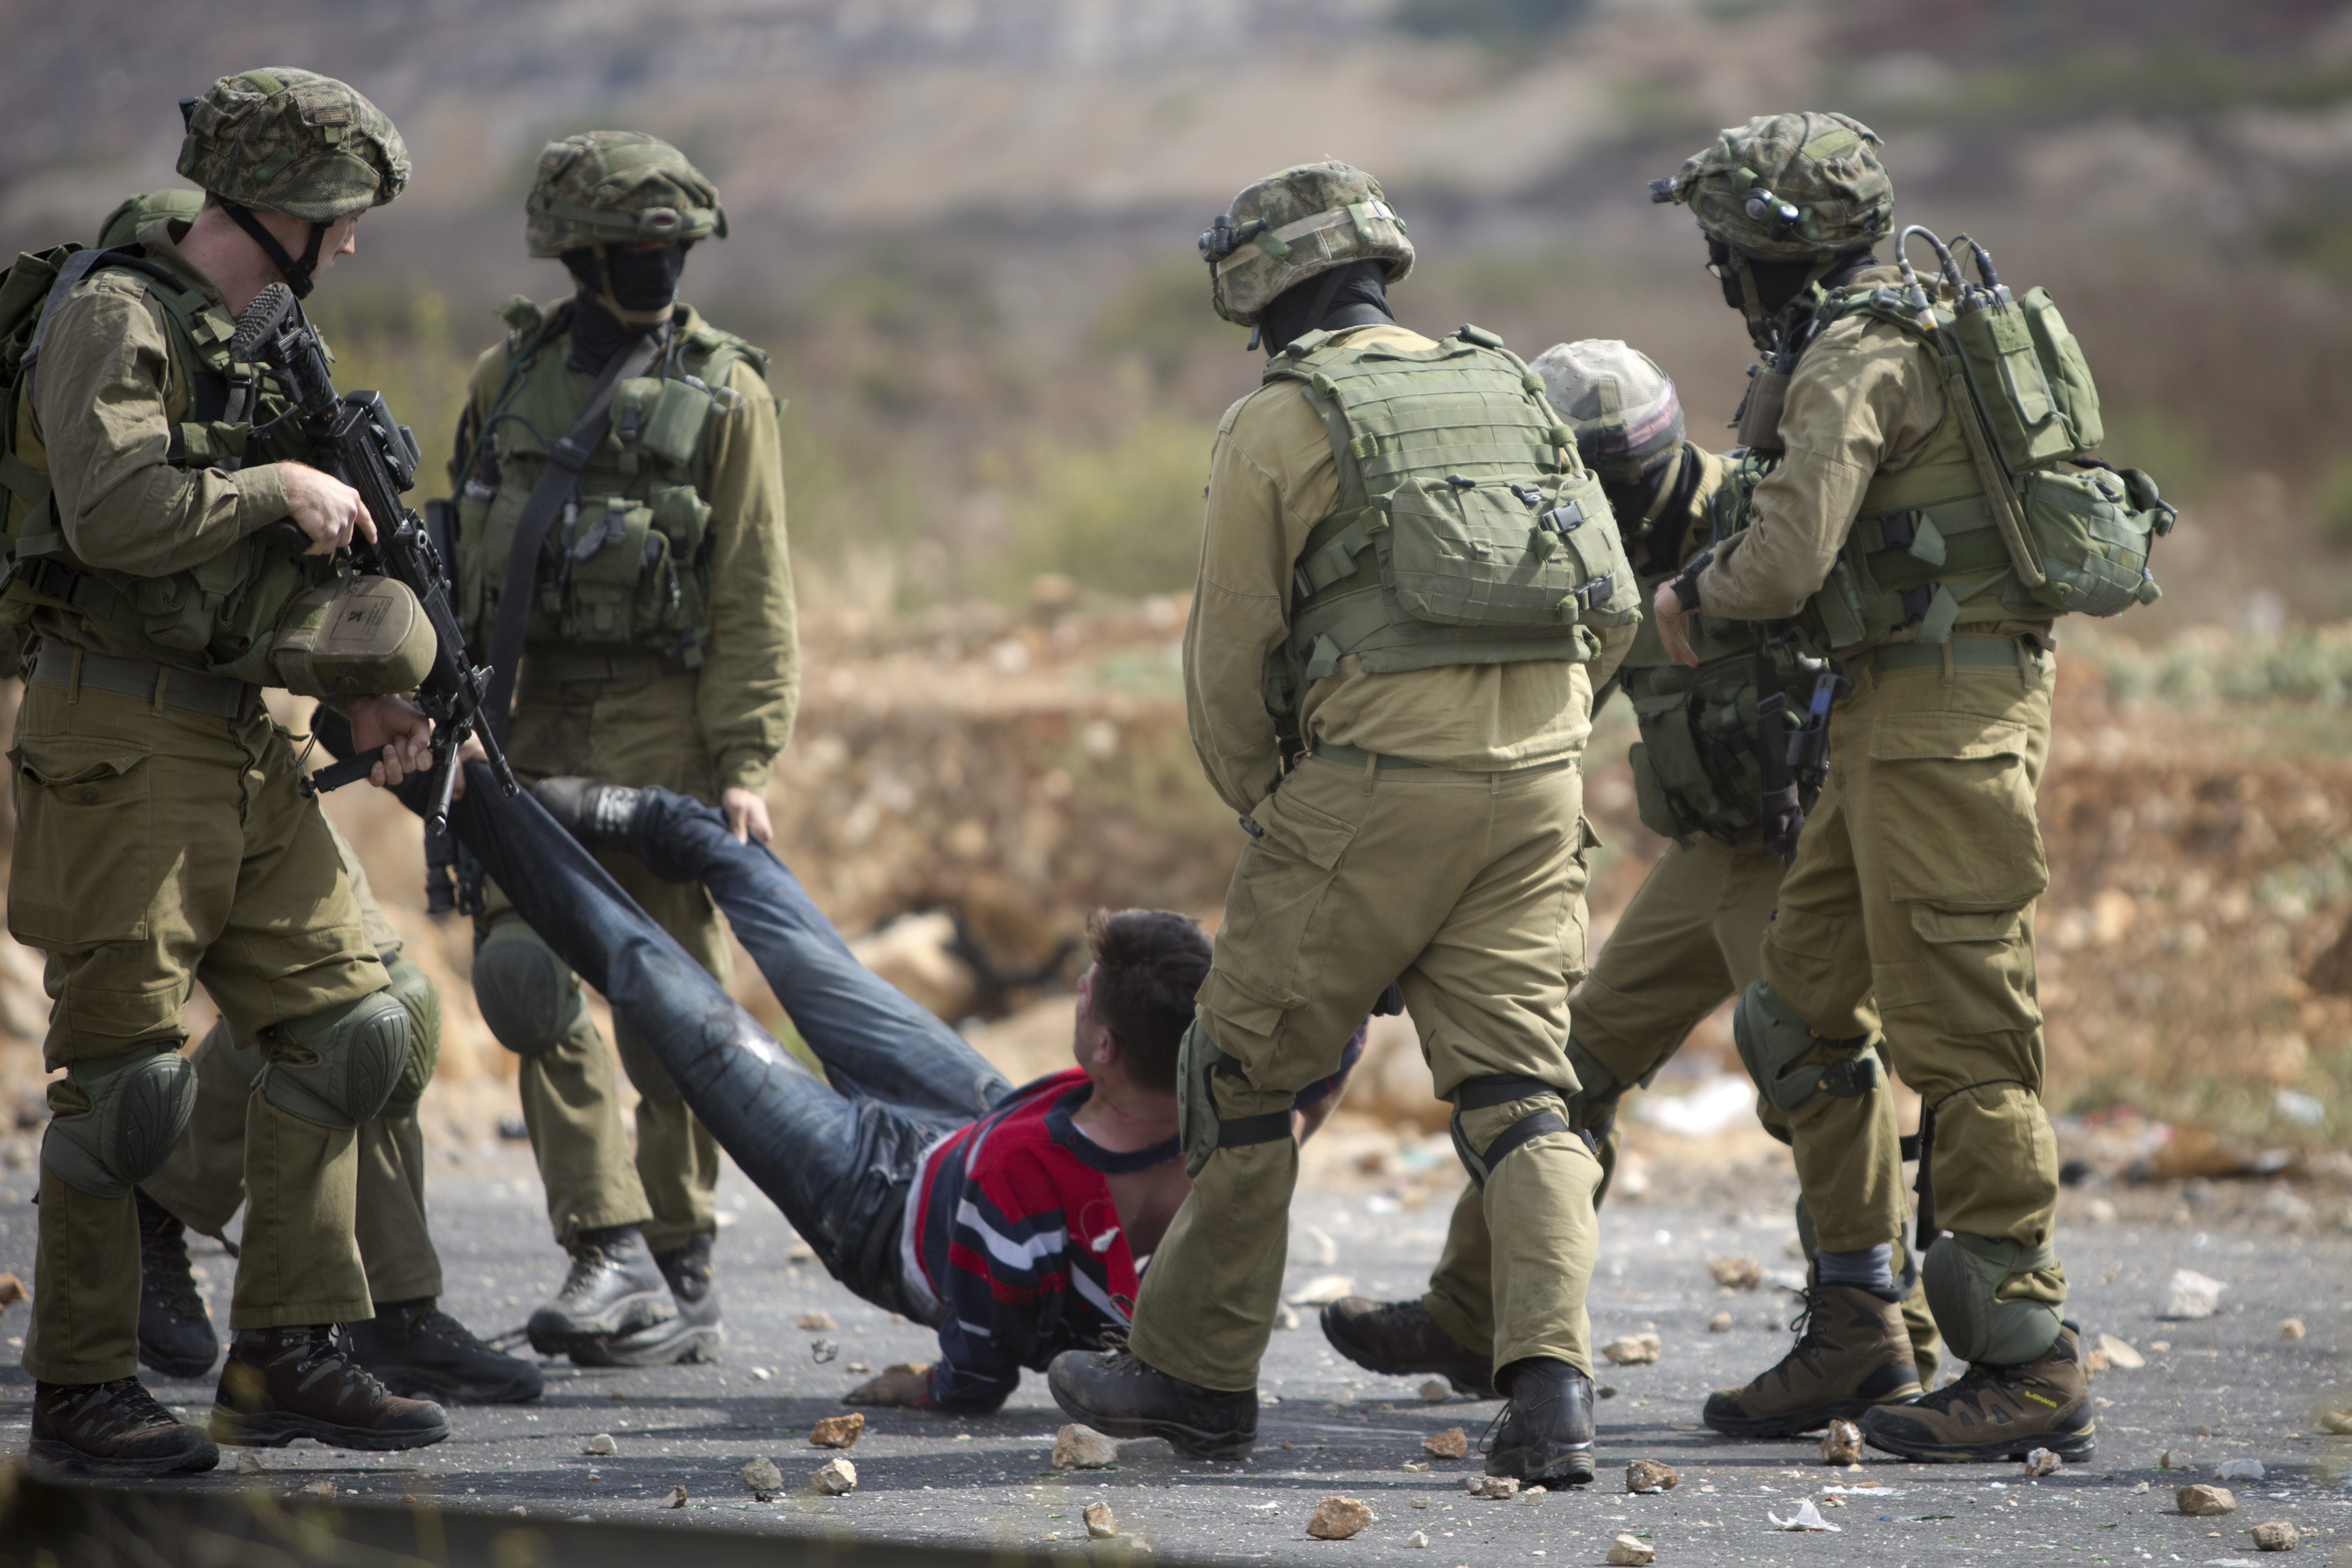 Israeli soldiers carry a Palestinian demonstrator who was wounded by Israeil security forces during clashes near Ramallah, West Bank on Oct. 7, 2015.